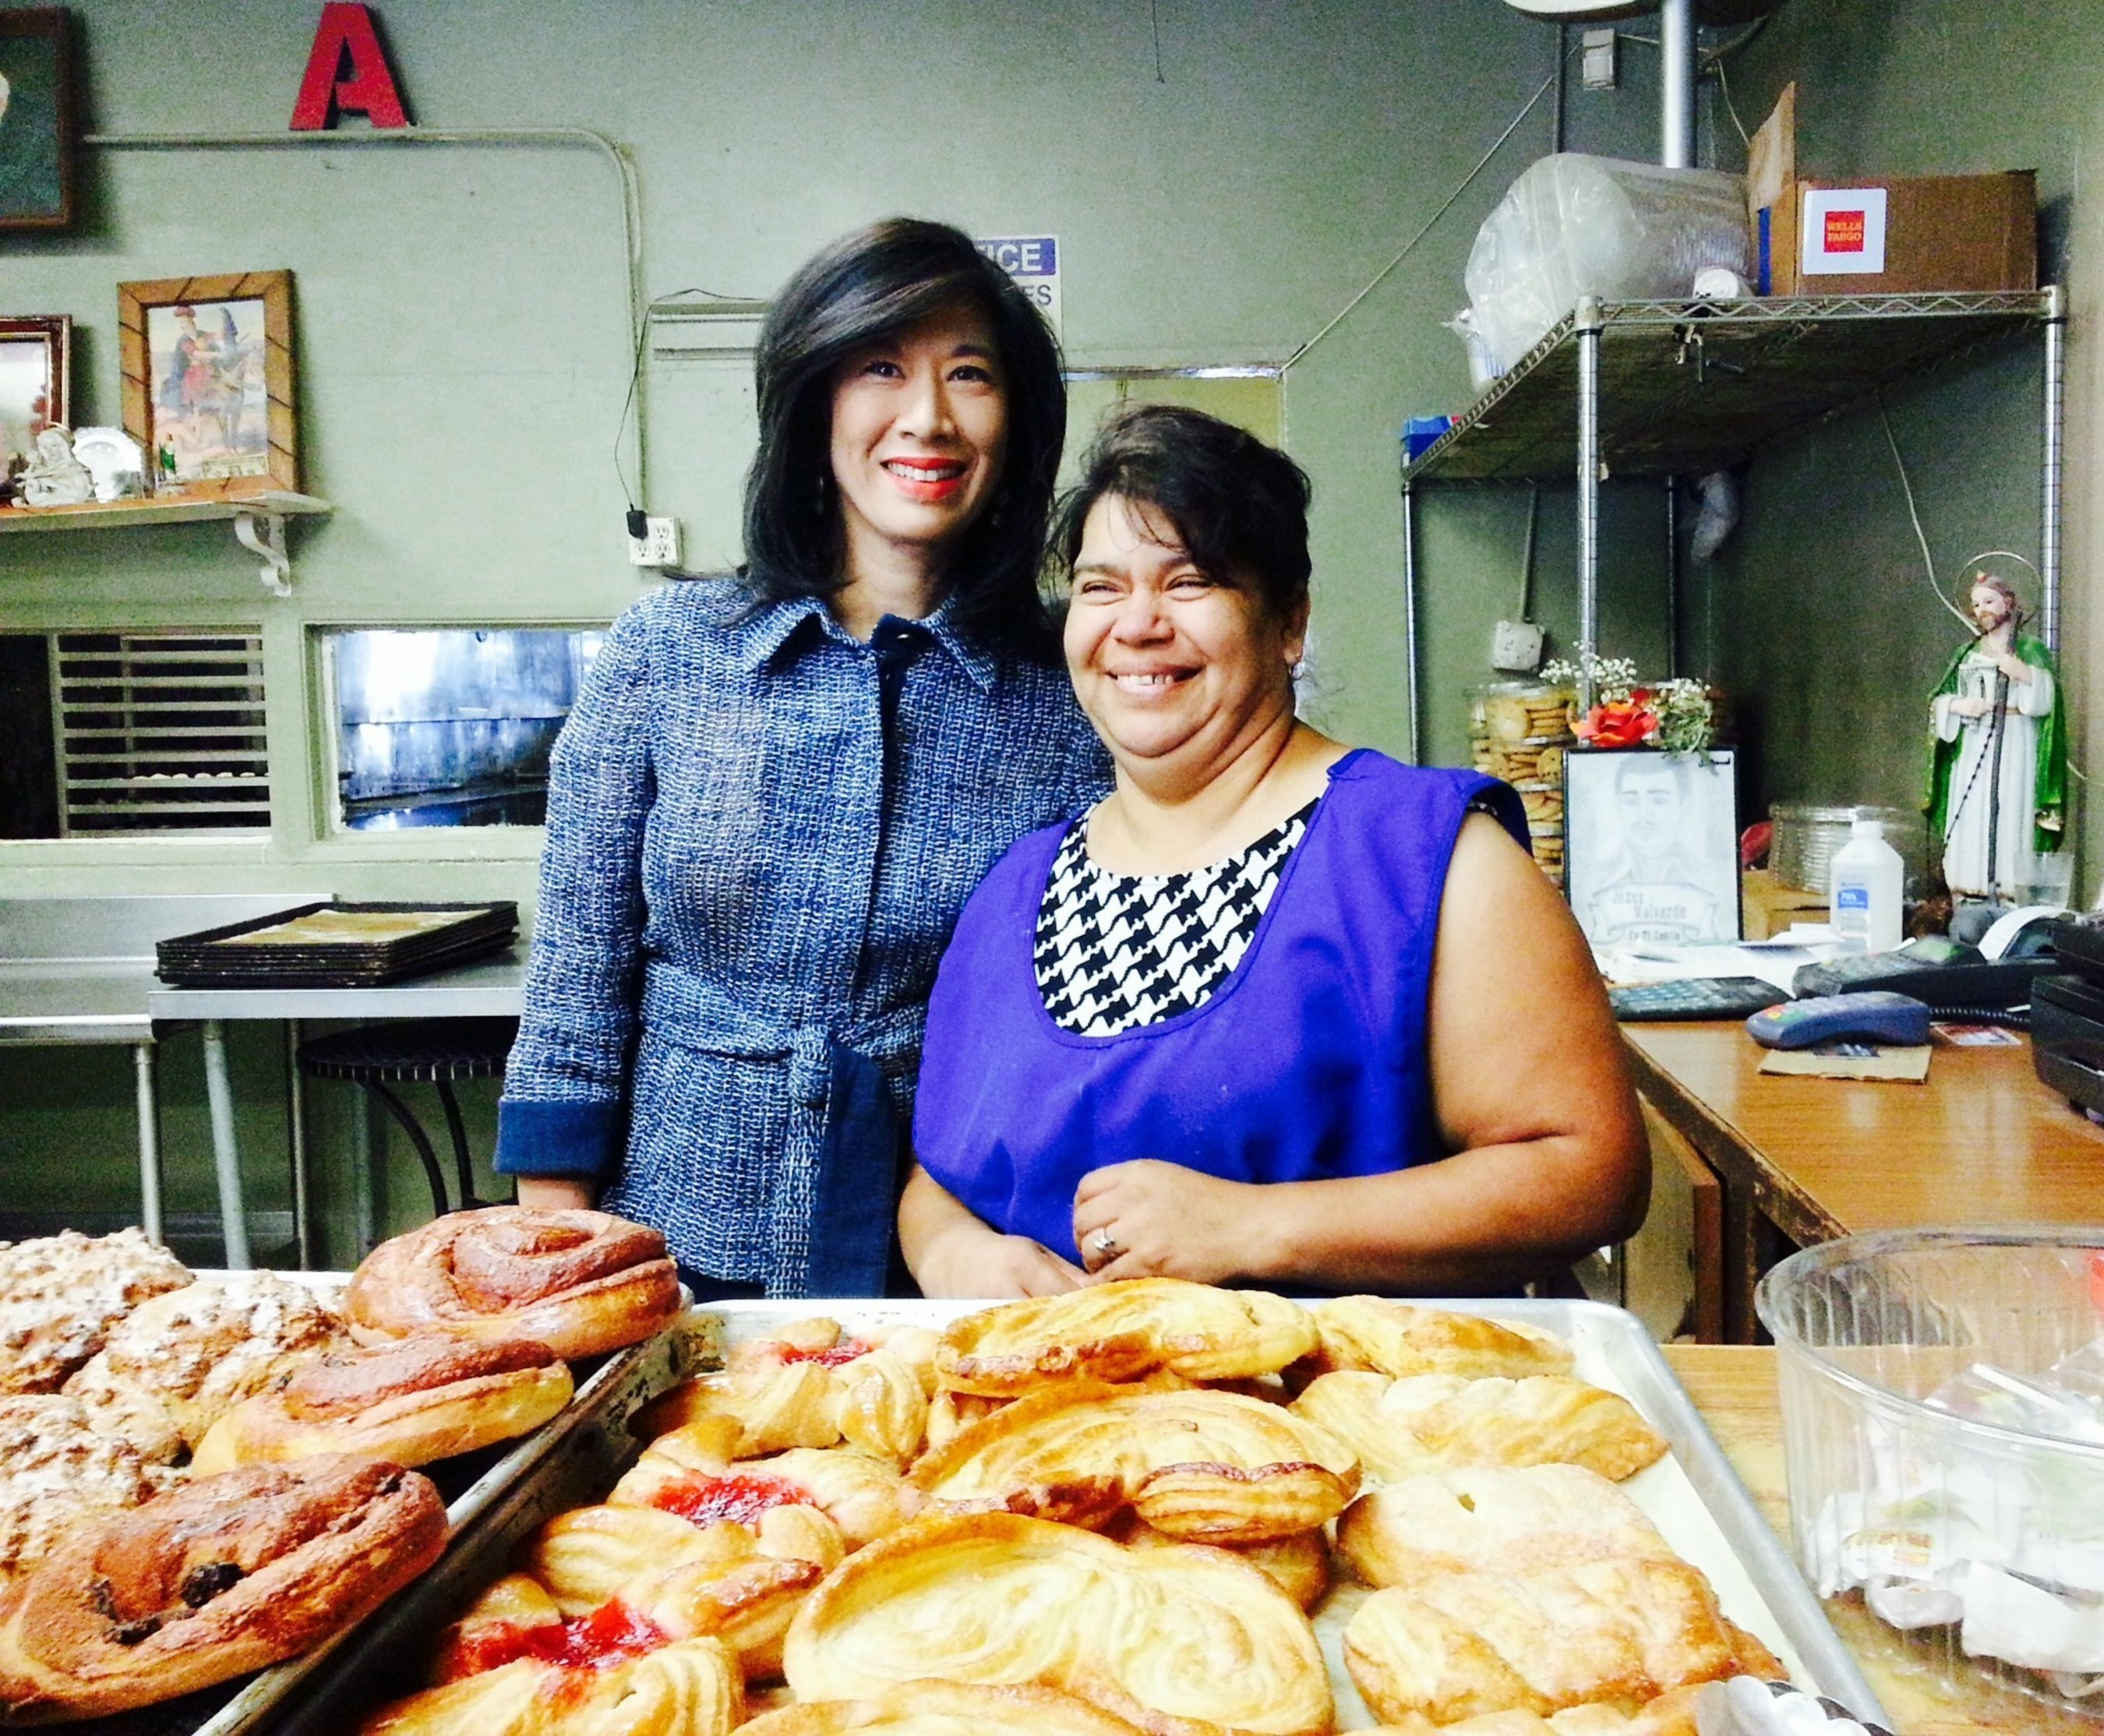 Grameen America CEO Andrea Jung with Bertha, a baker in Los Angeles who is growing her business thanks to a microloan from Grameen America.